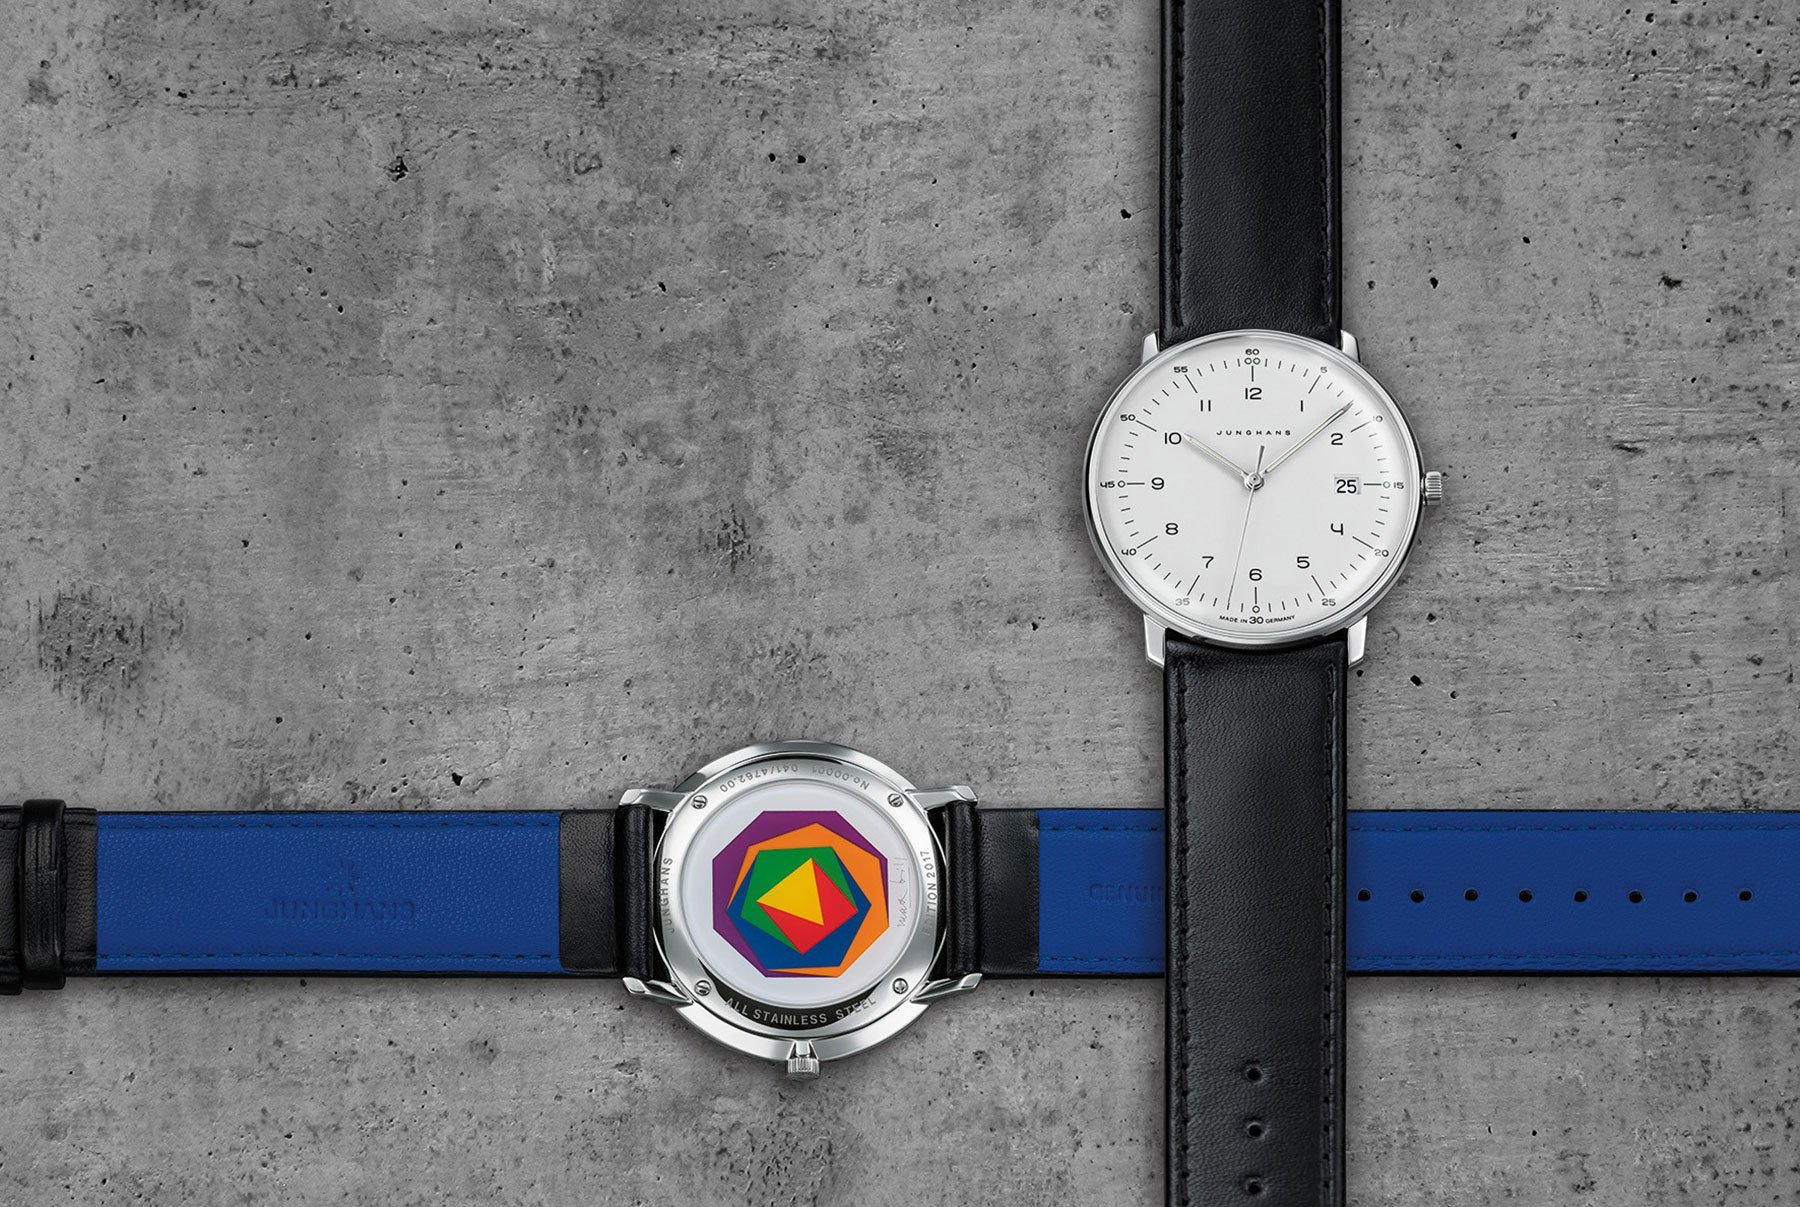 Meaning of the number 22 in the - The Collection Is Available In A Limited Edition Of 222 A Play On The Number 22 Which Had A Special Meaning For The Artist Photographs Junghans